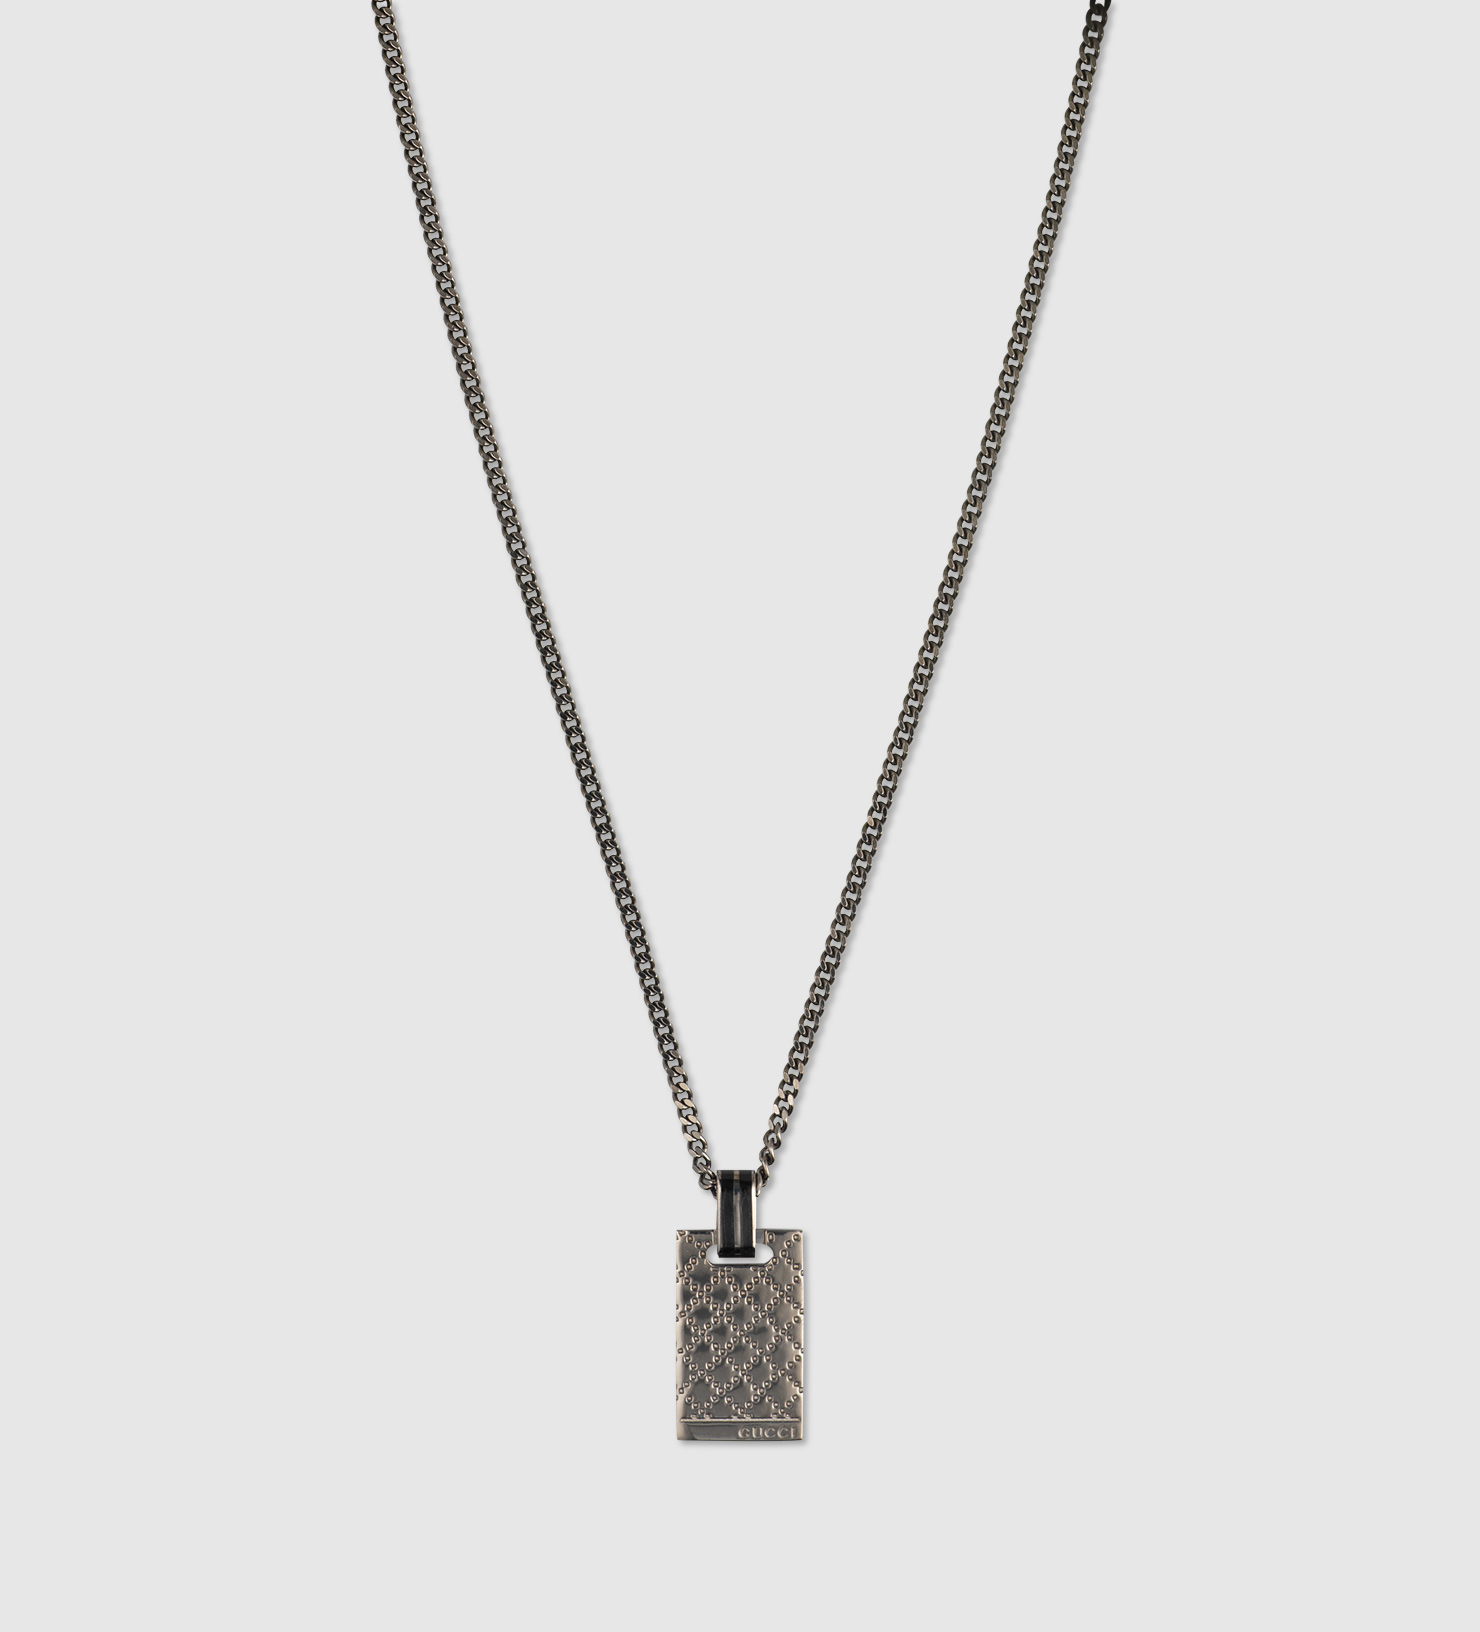 Lyst gucci diamantissima pendant necklace in sterling silver in gallery aloadofball Gallery